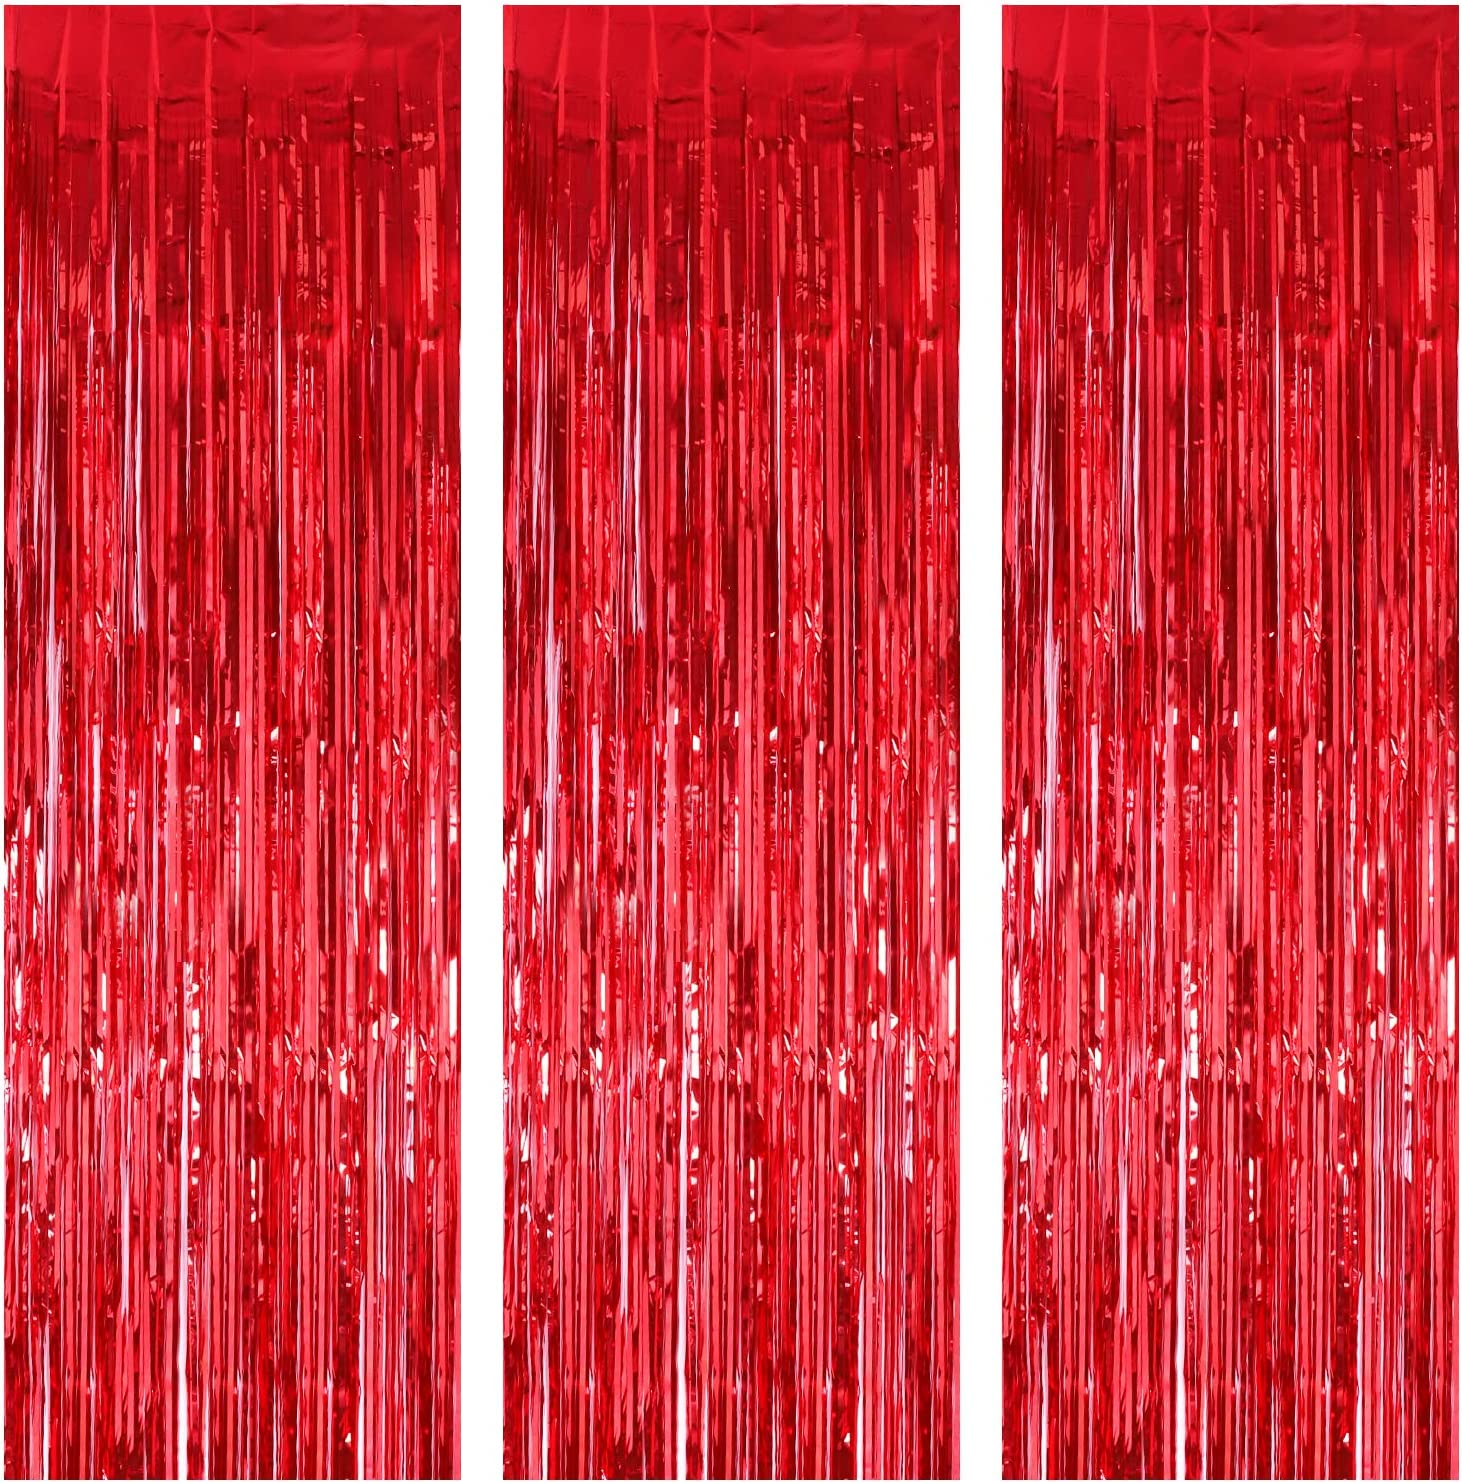 3 Pack Foil Curtains Metallic Foil Fringe Curtain for Birthday Party Photo Backdrop Wedding Event Decor (Red)